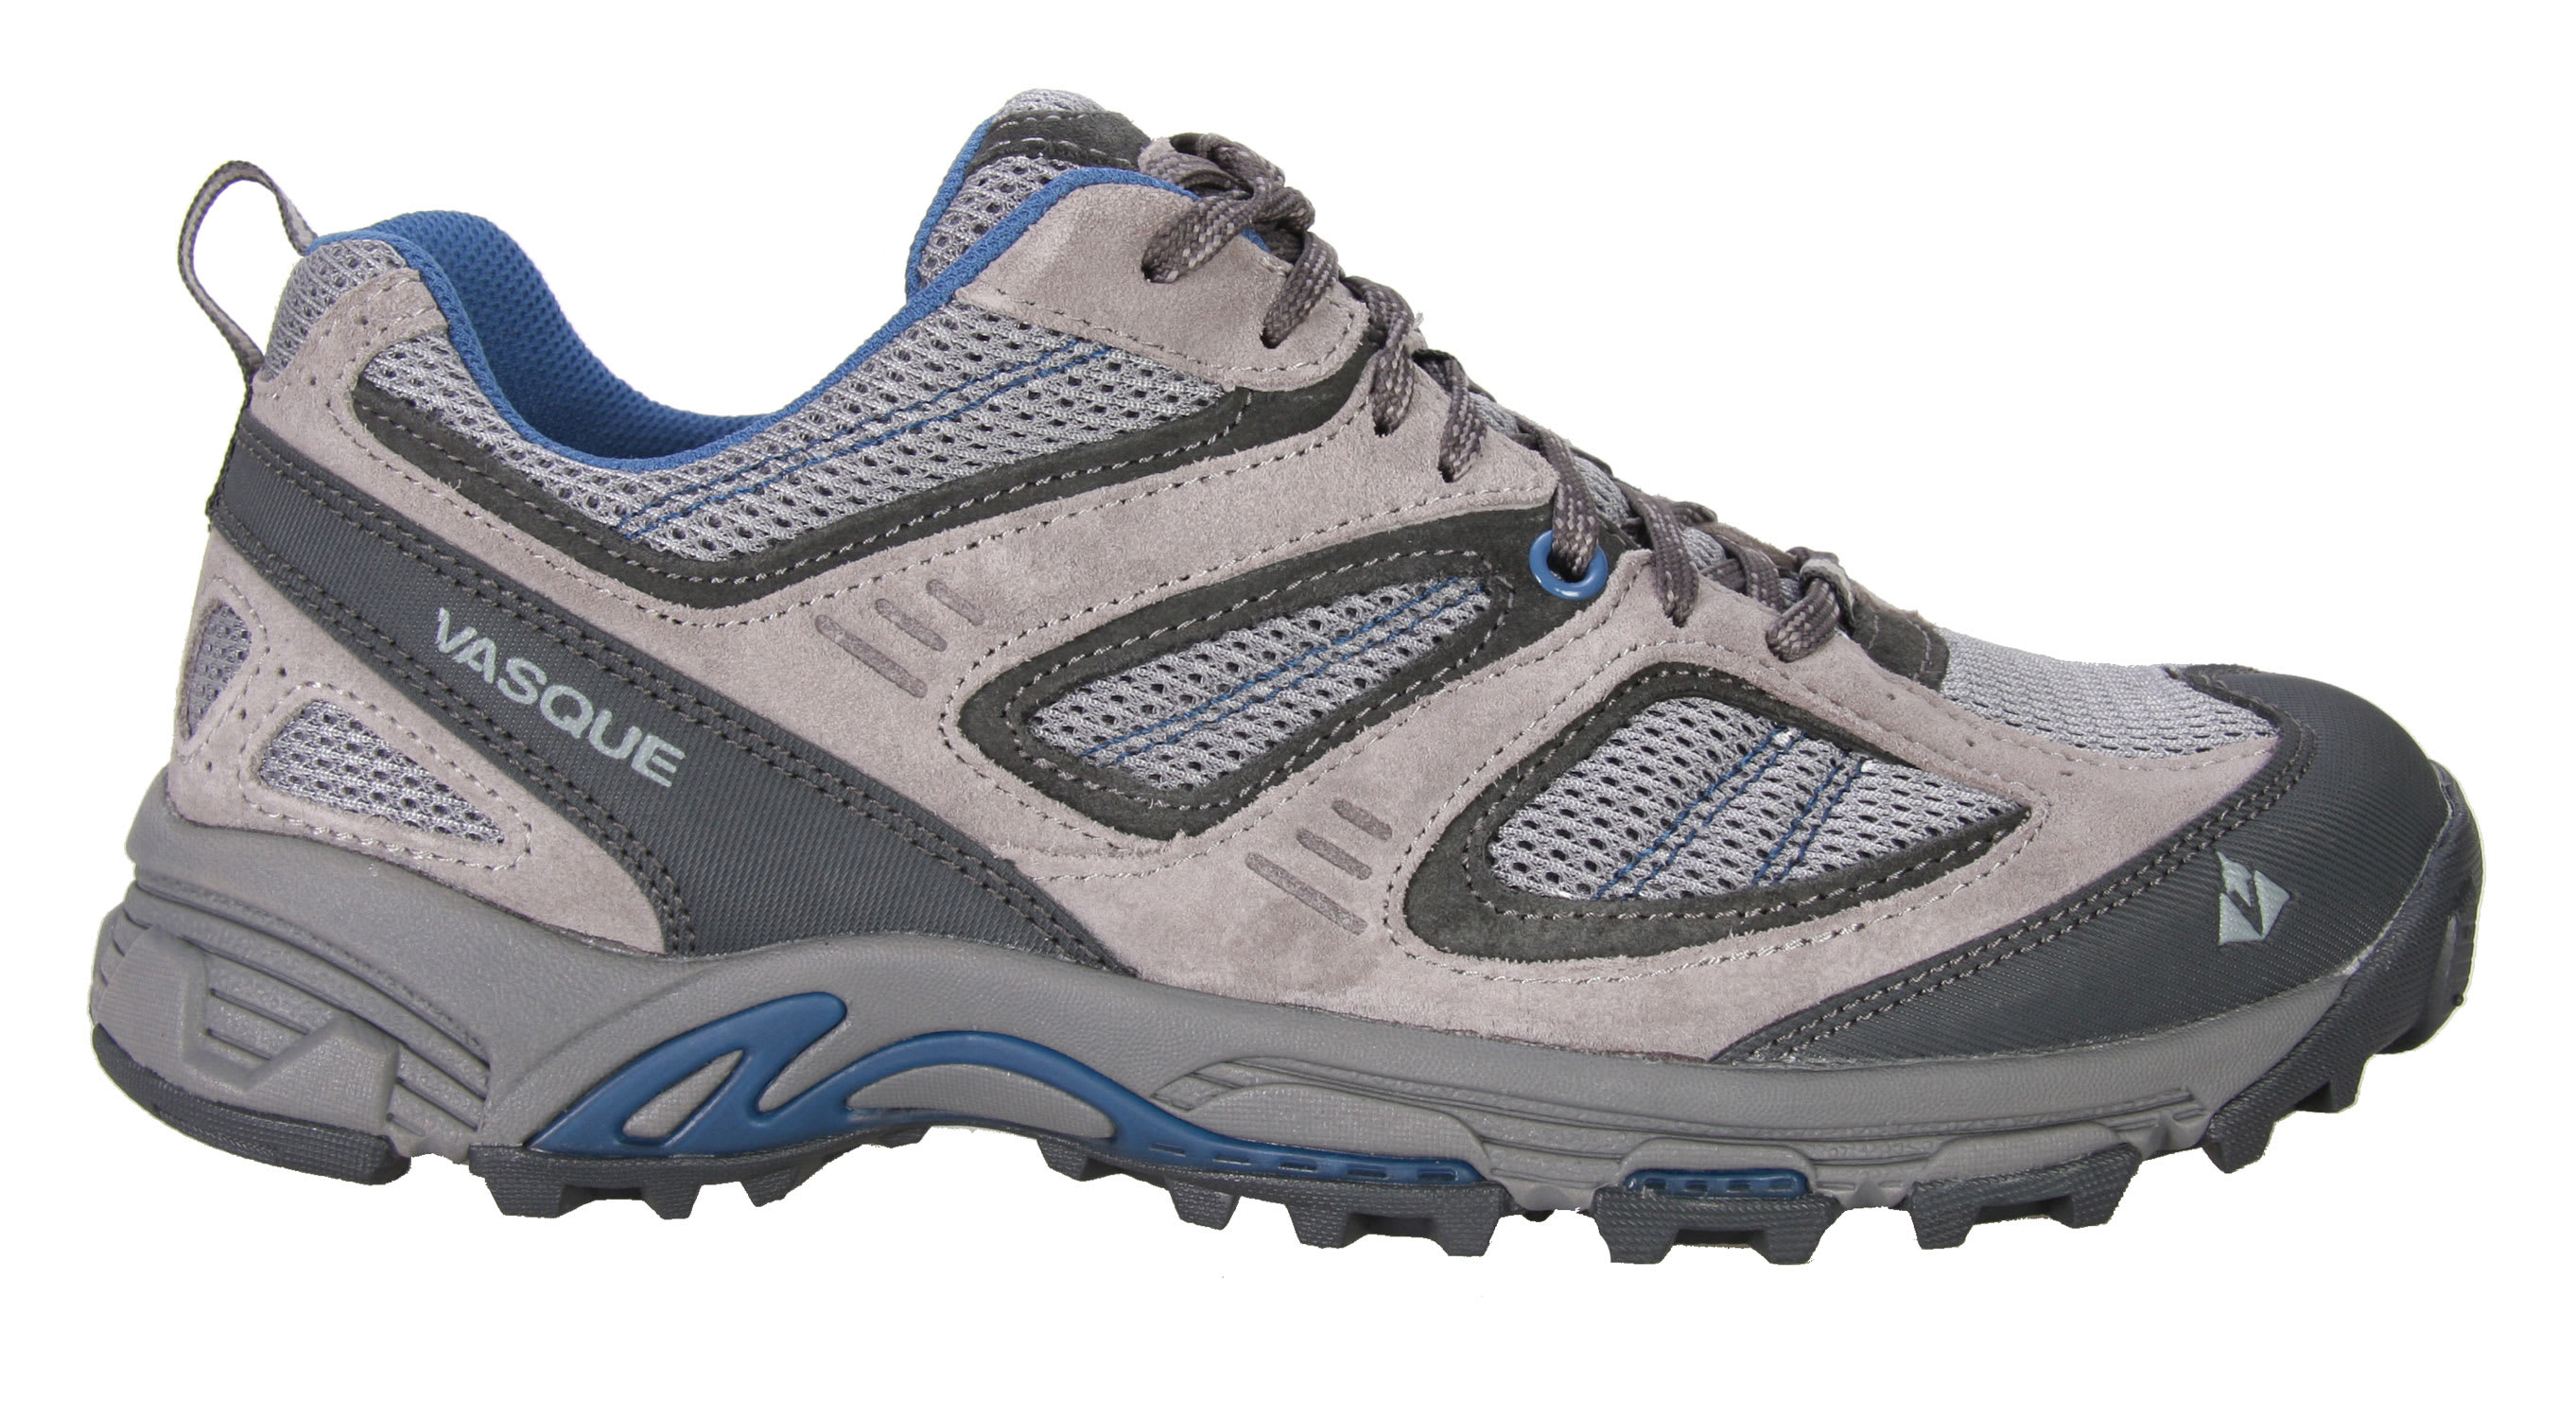 Shop for Vasque Opportunist Low Hiking Shoes Griffin/Blue - Men's